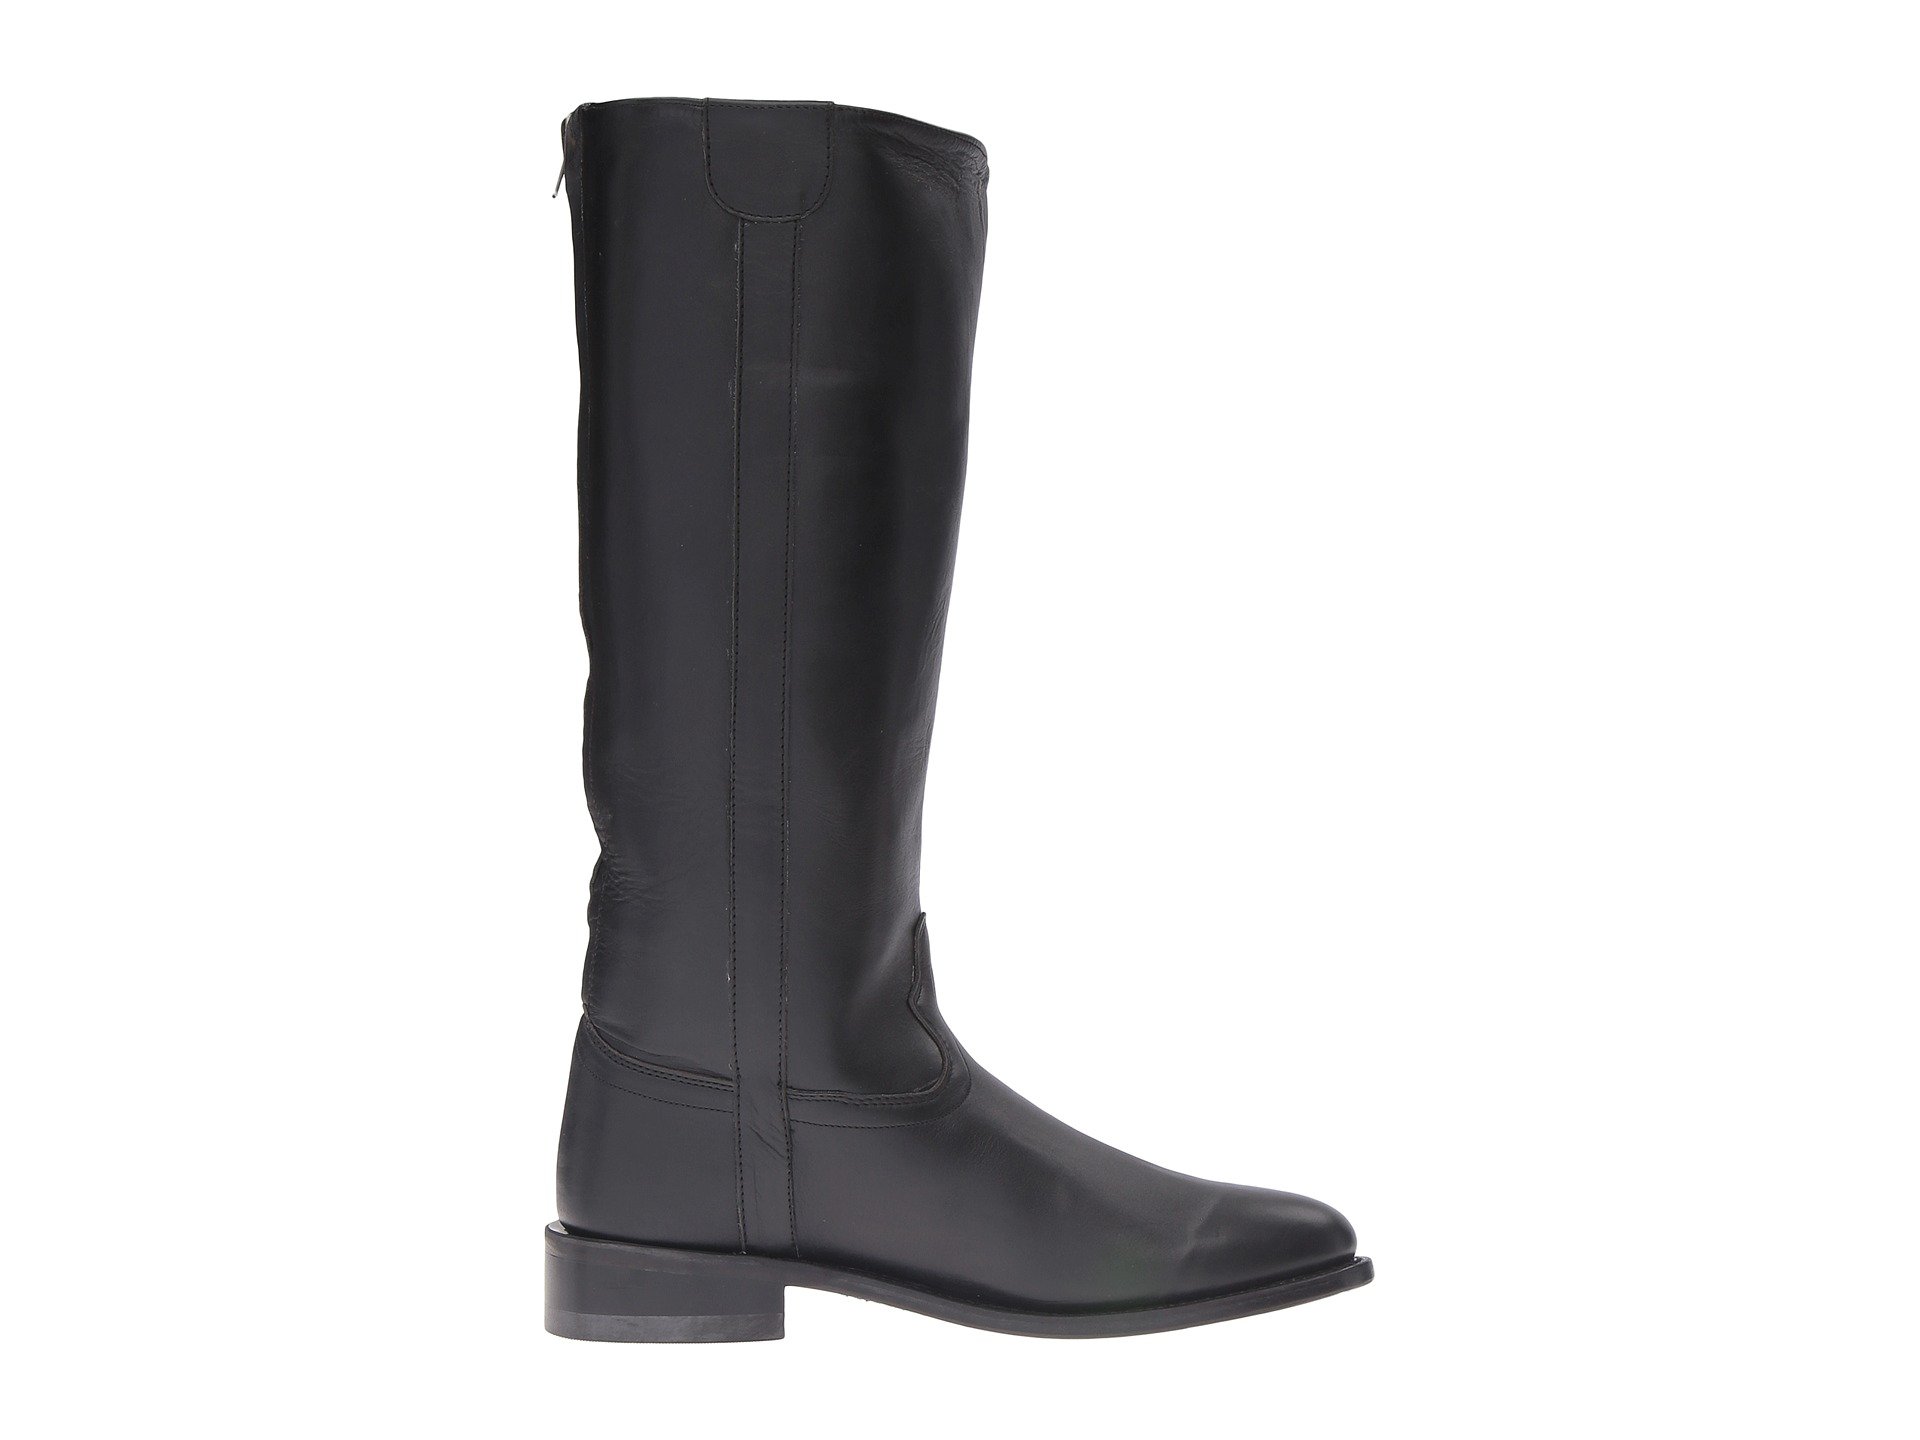 west boots lb1602 at zappos